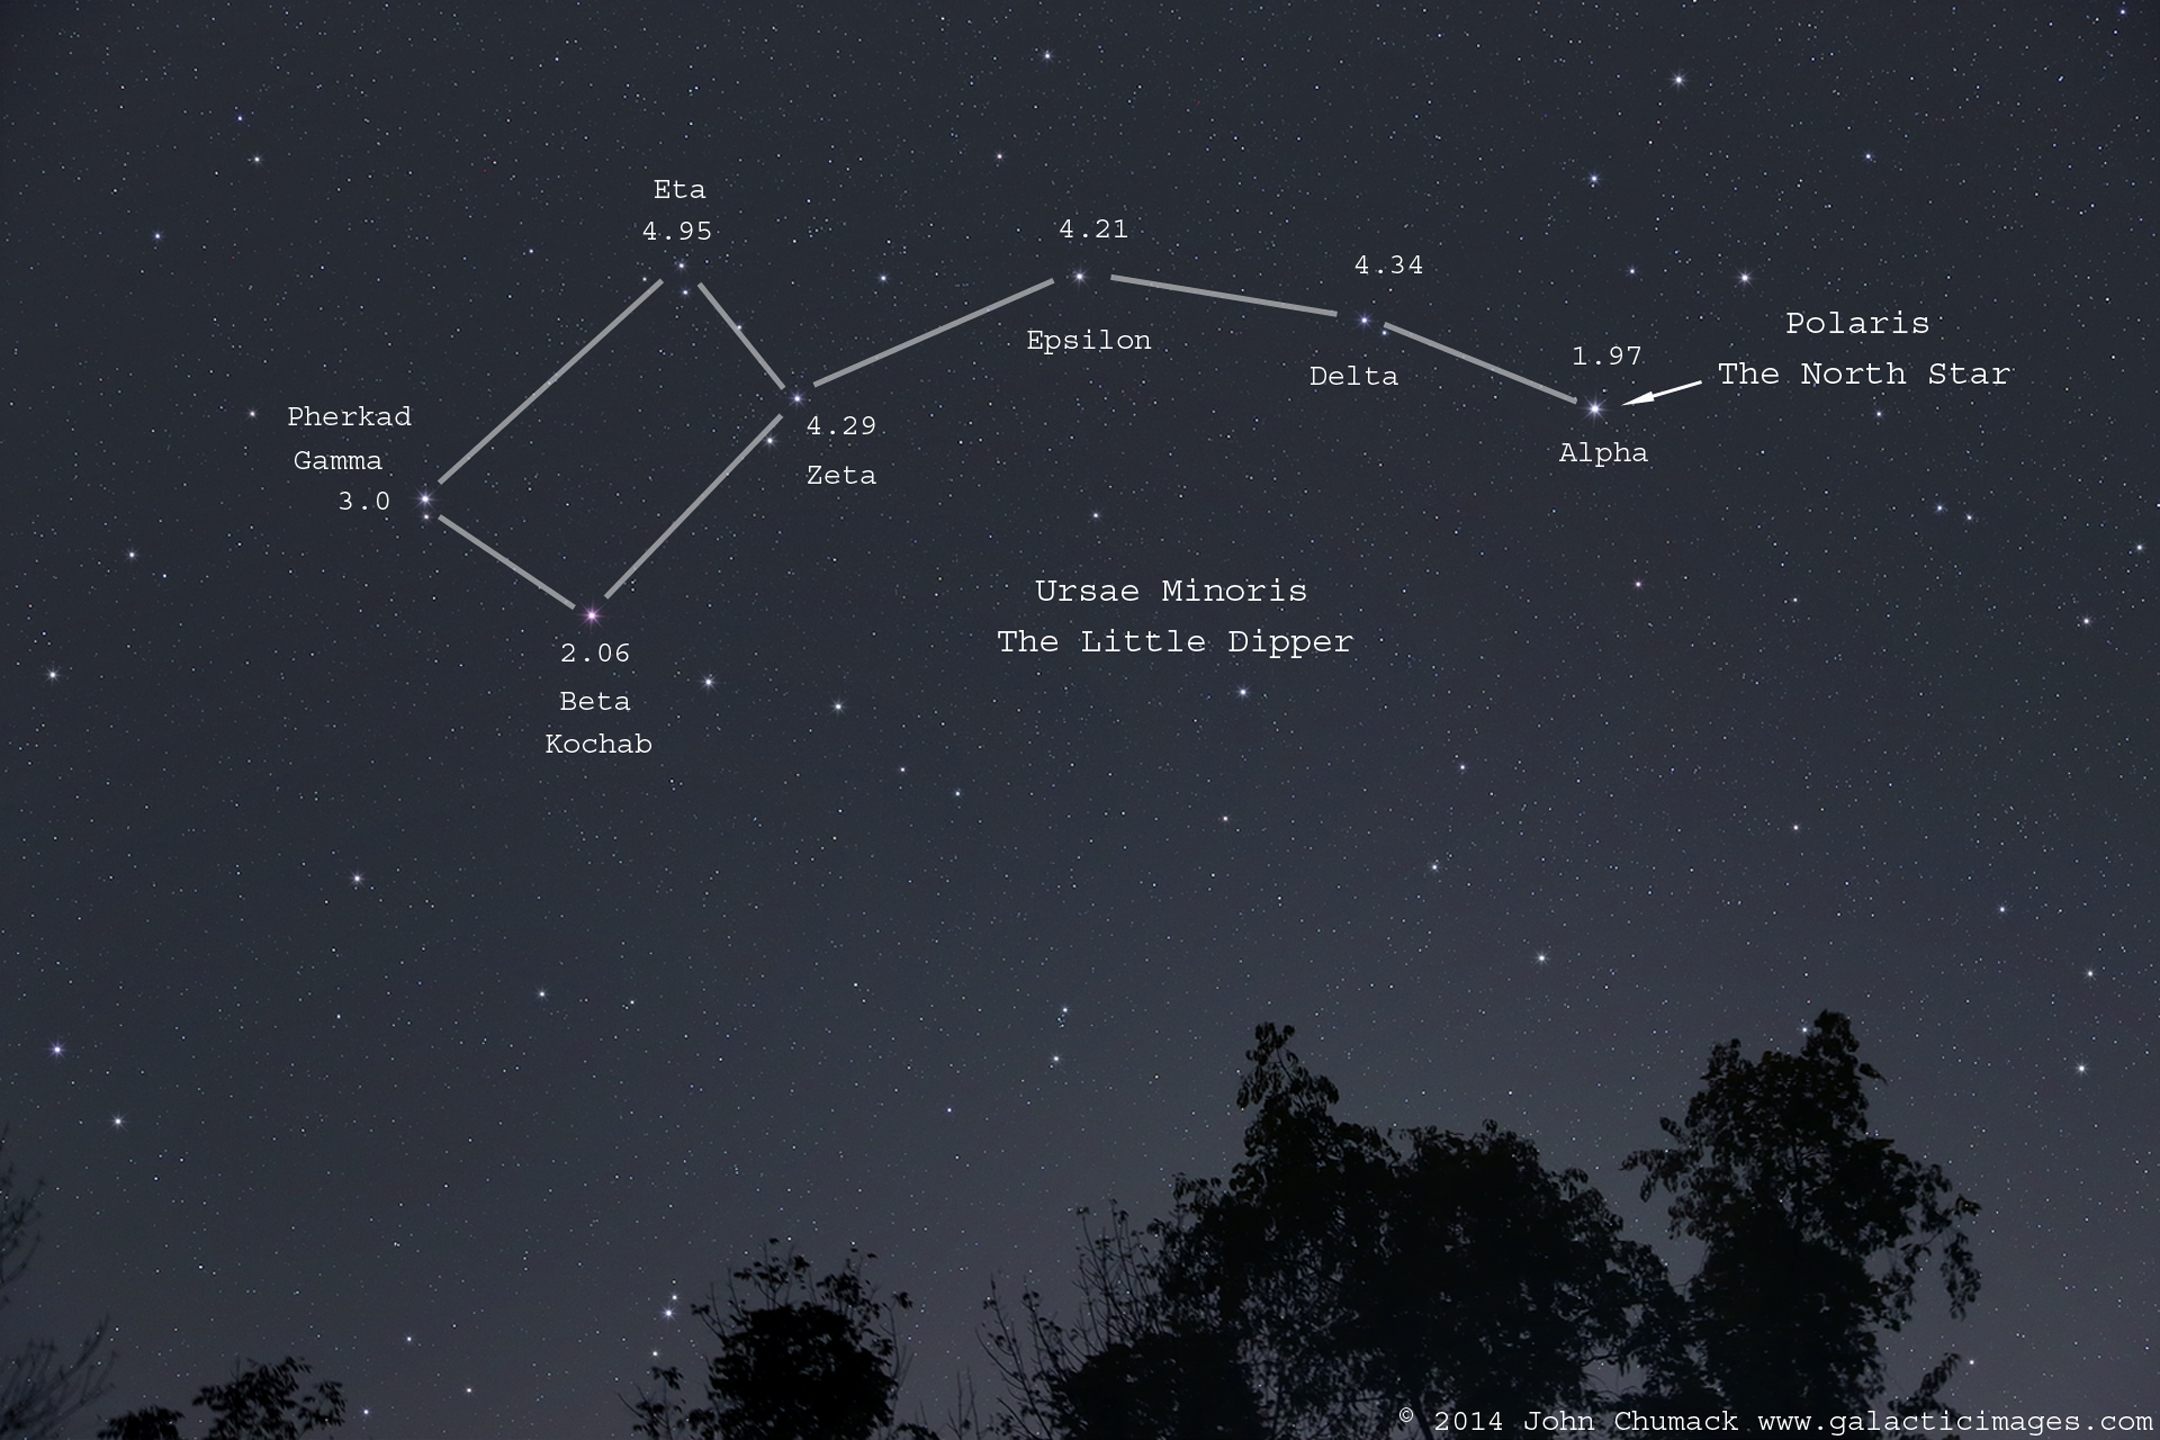 The Little Dipper And The North Star